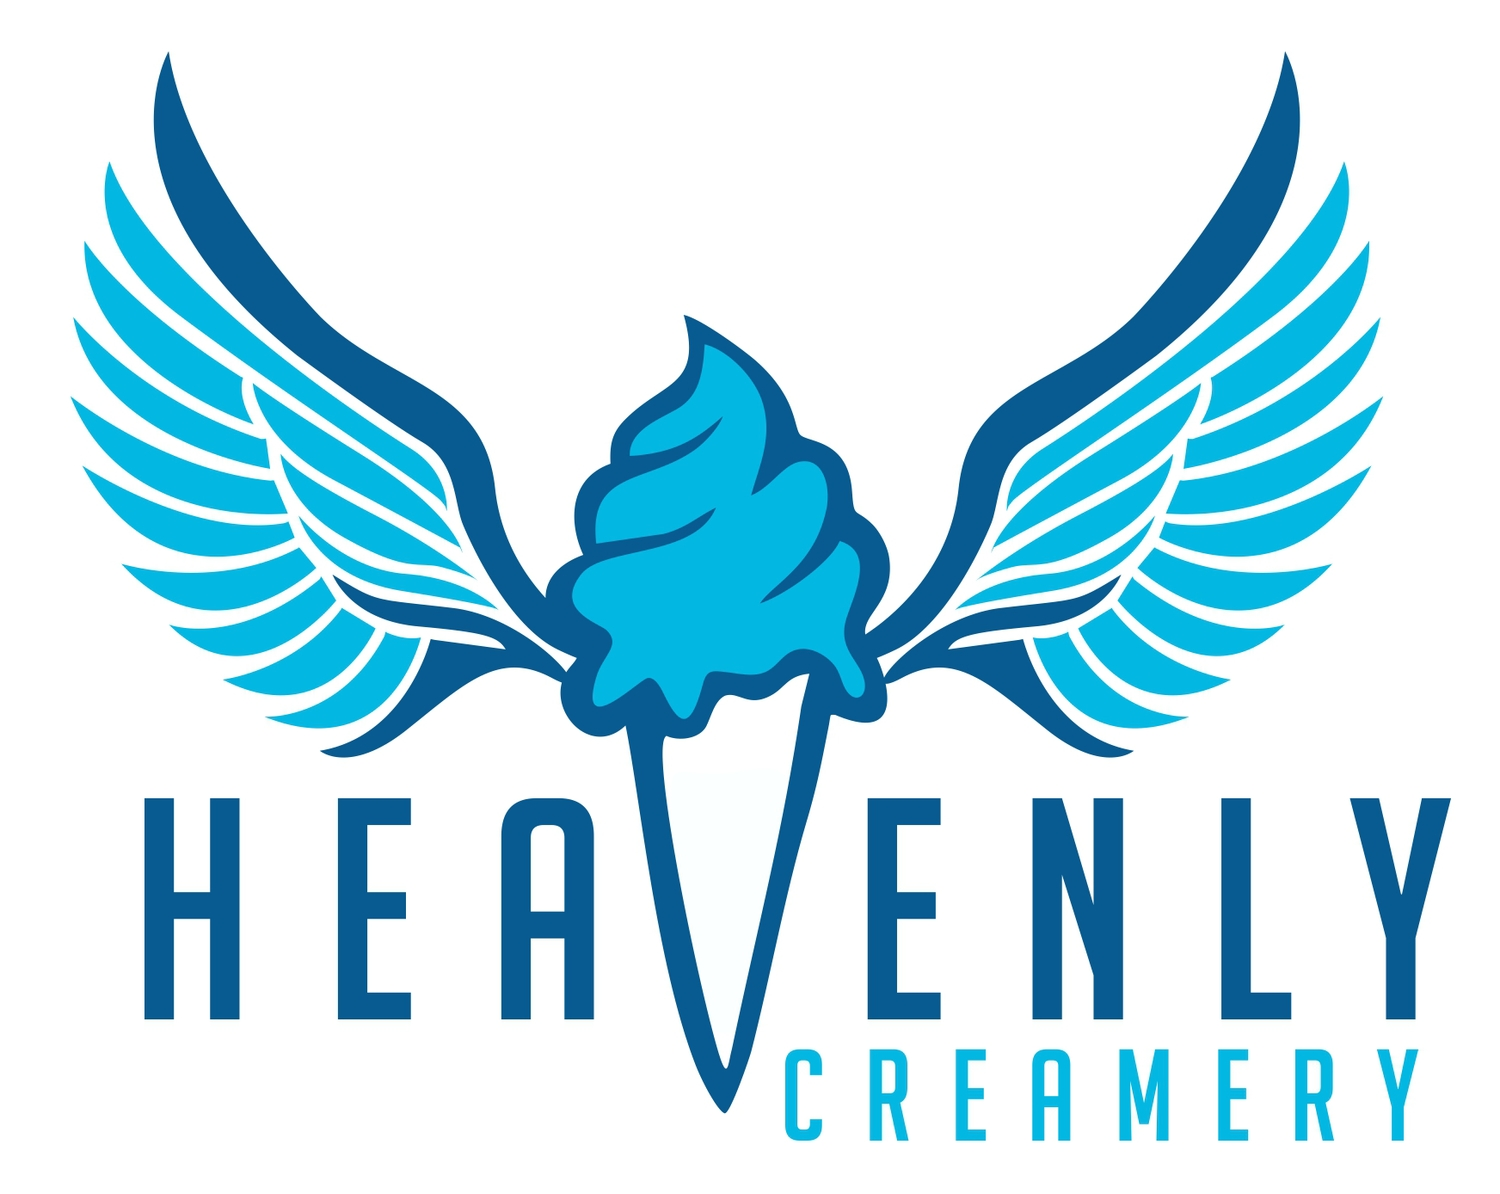 Heavenly Creamery